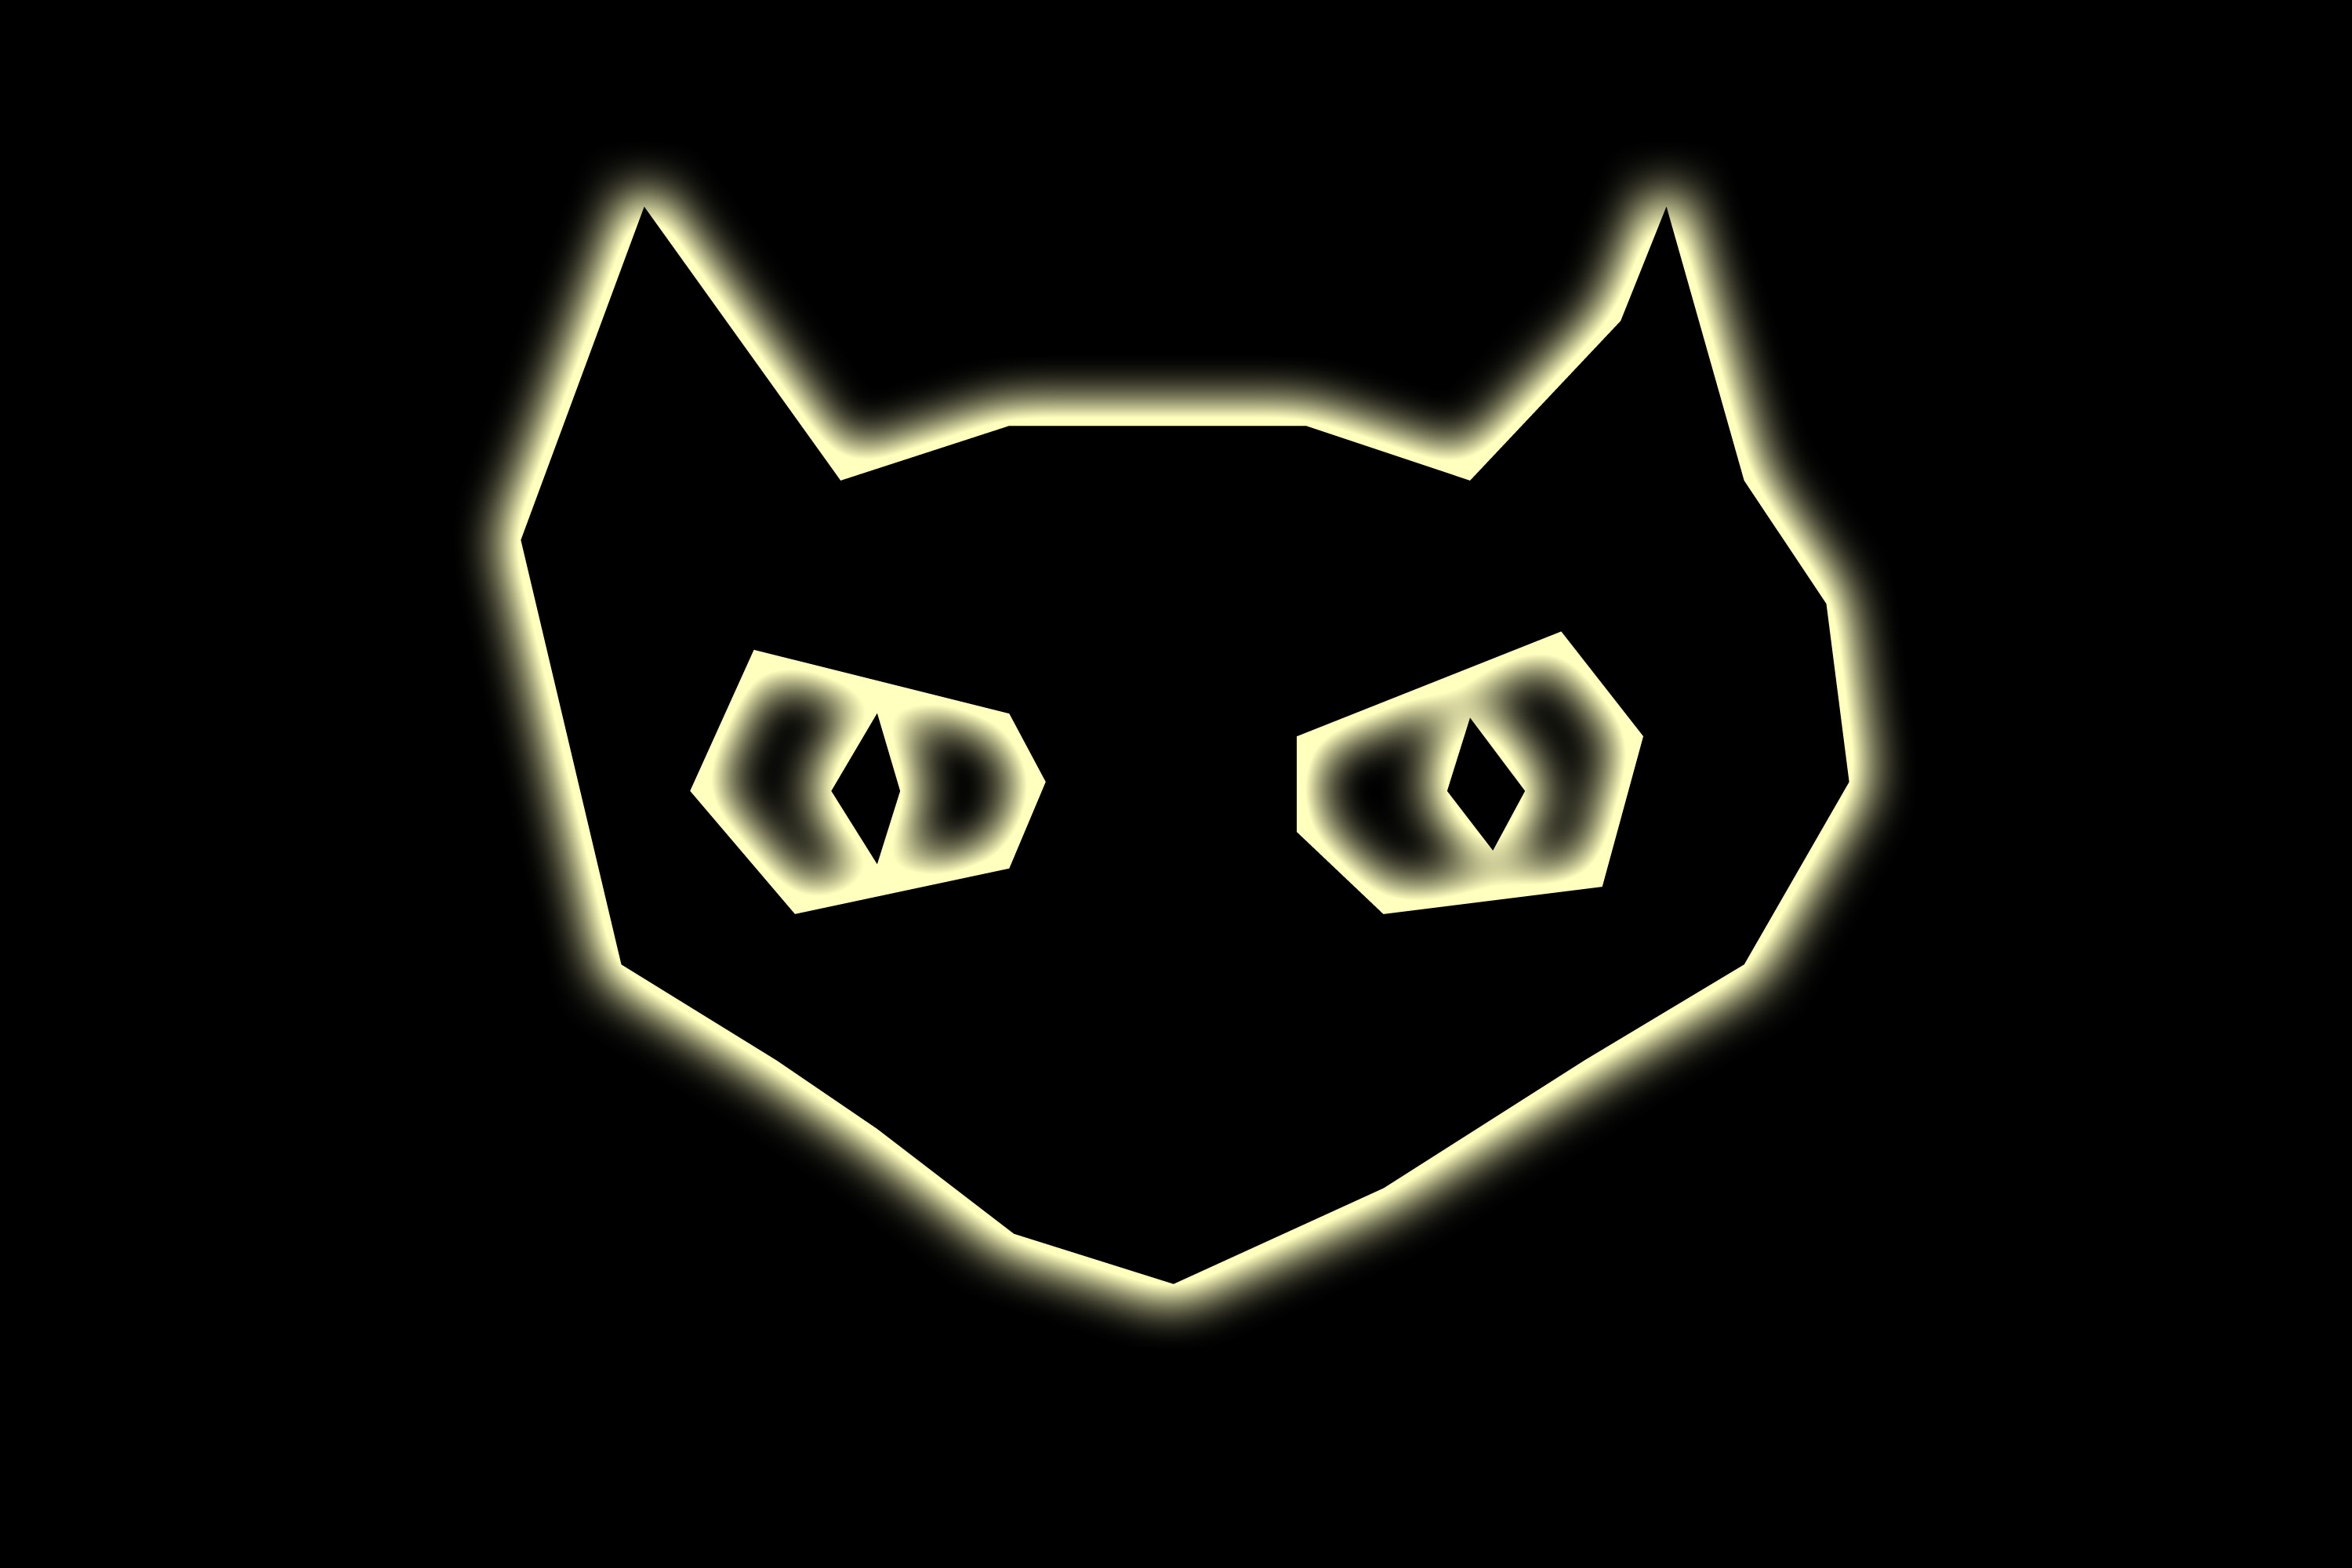 creepy cat face with glowing edges